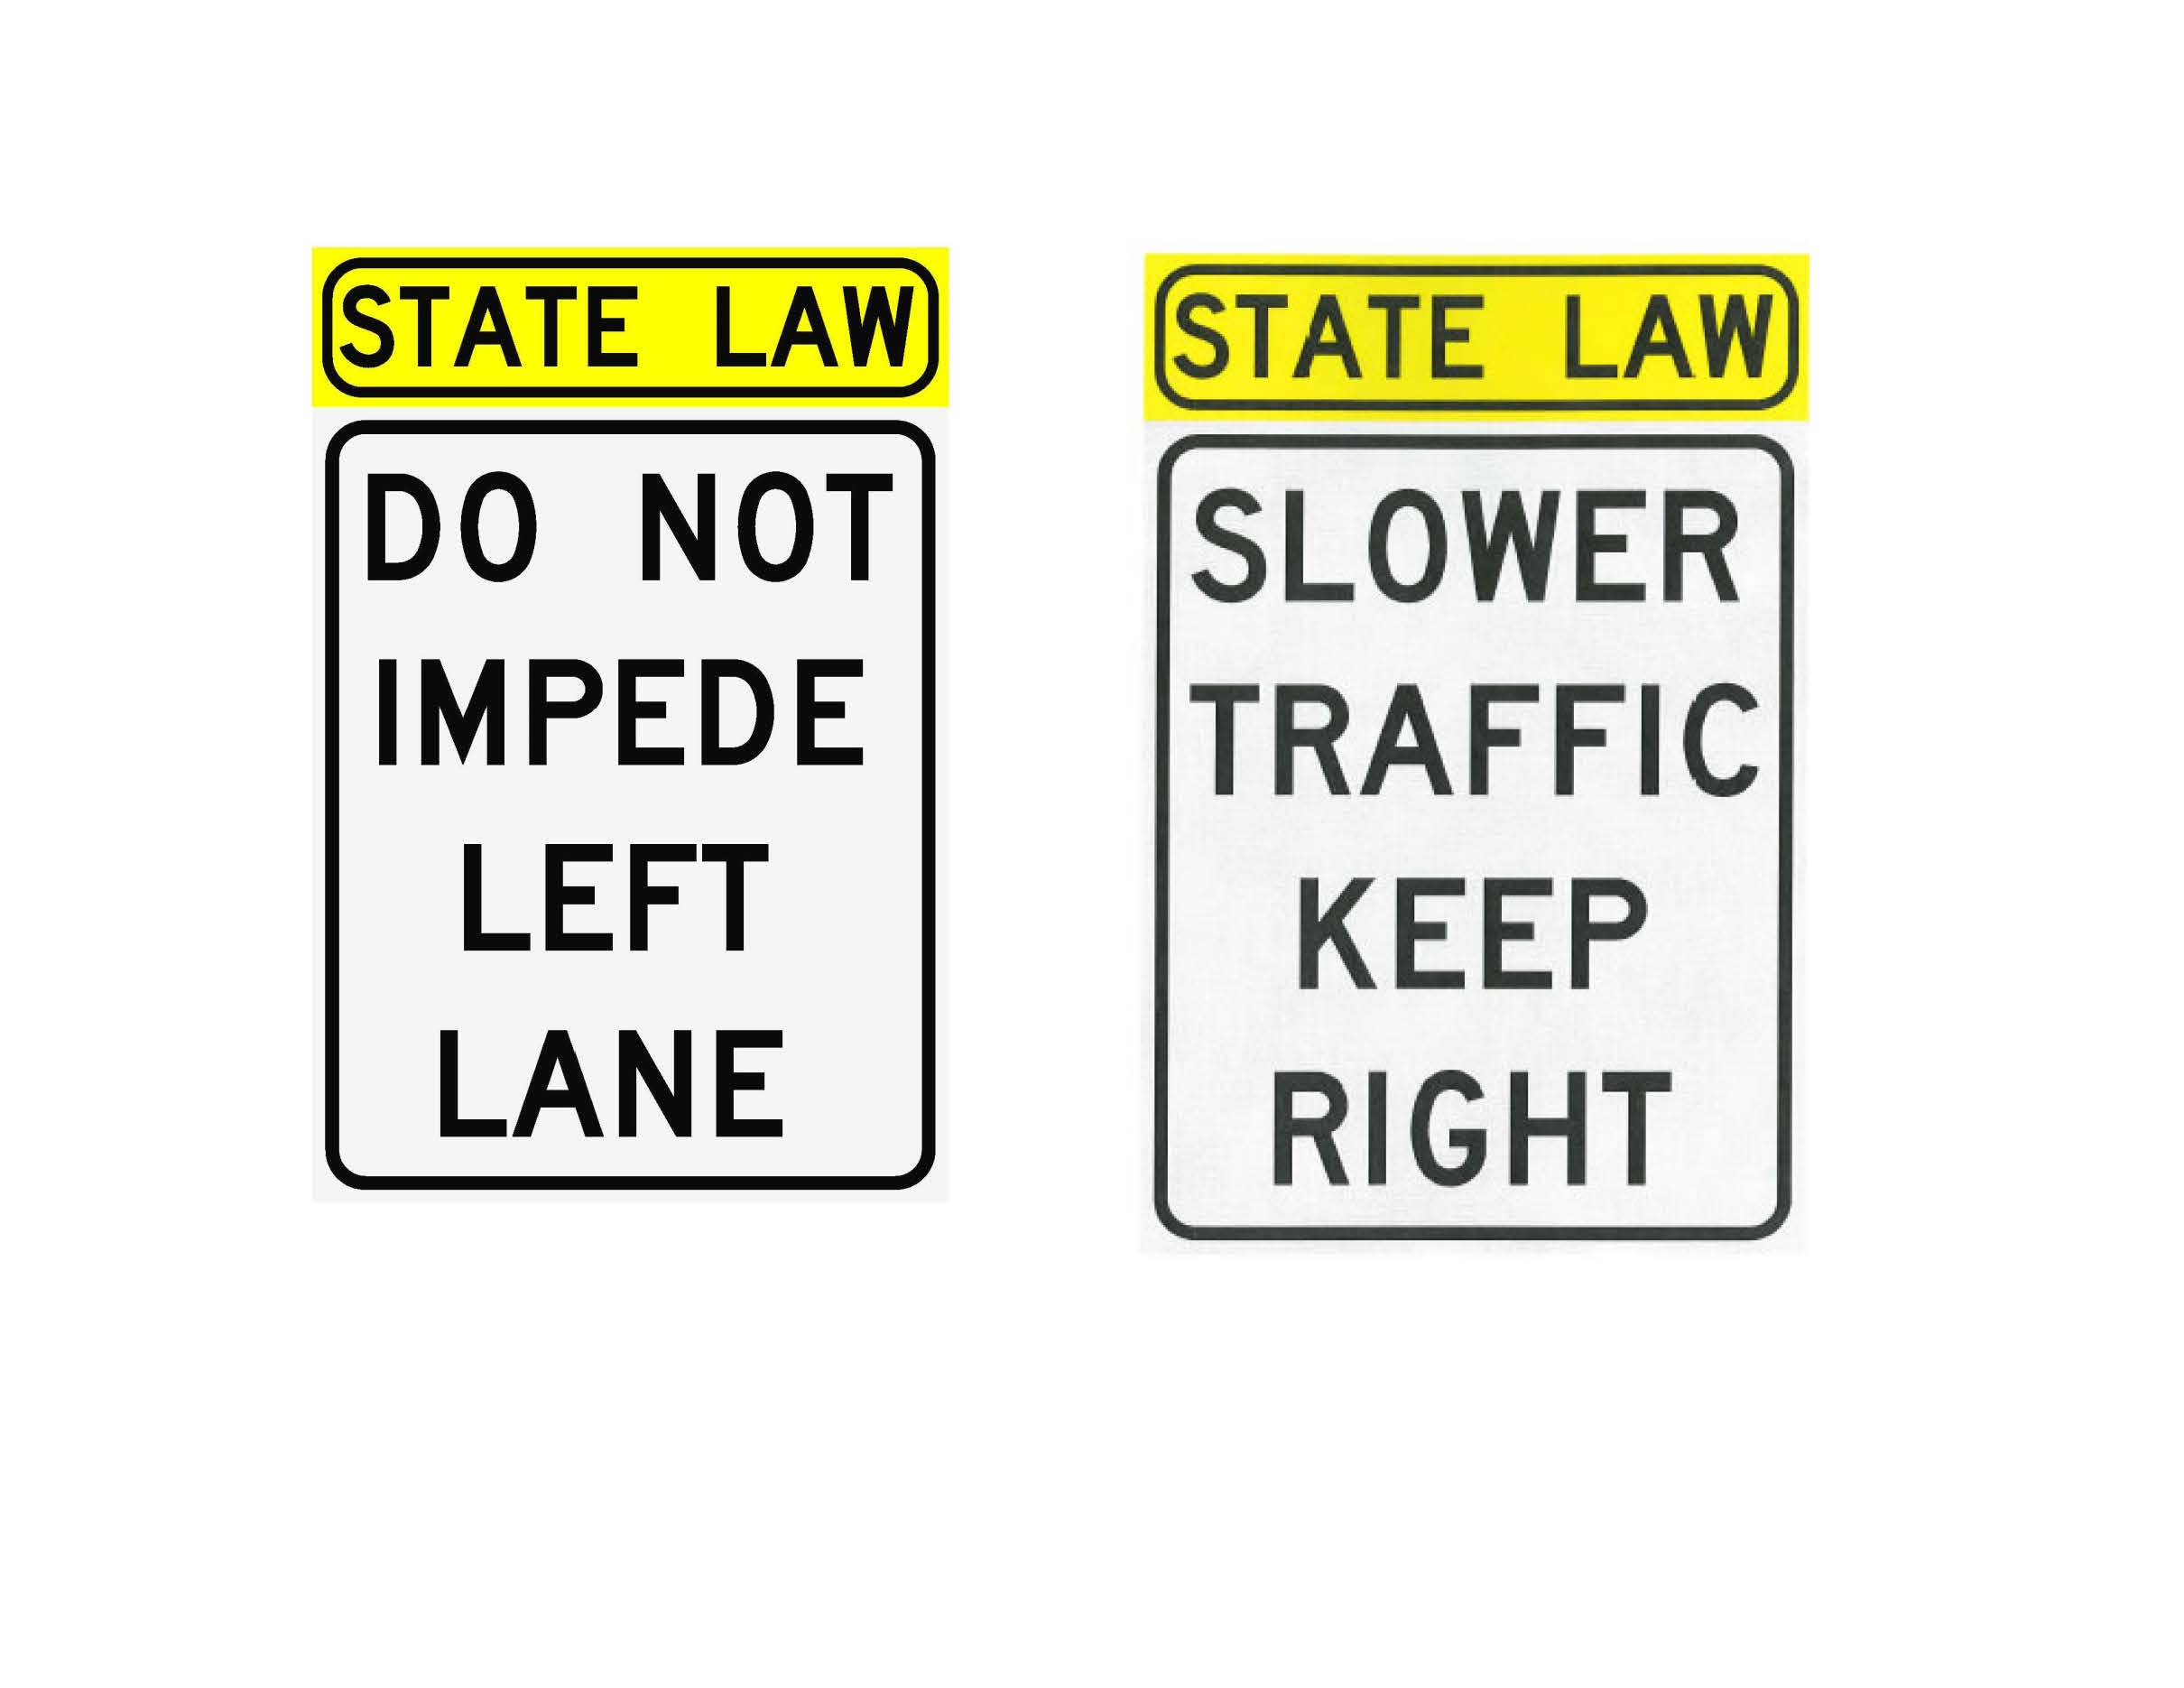 New interstate traffic signs